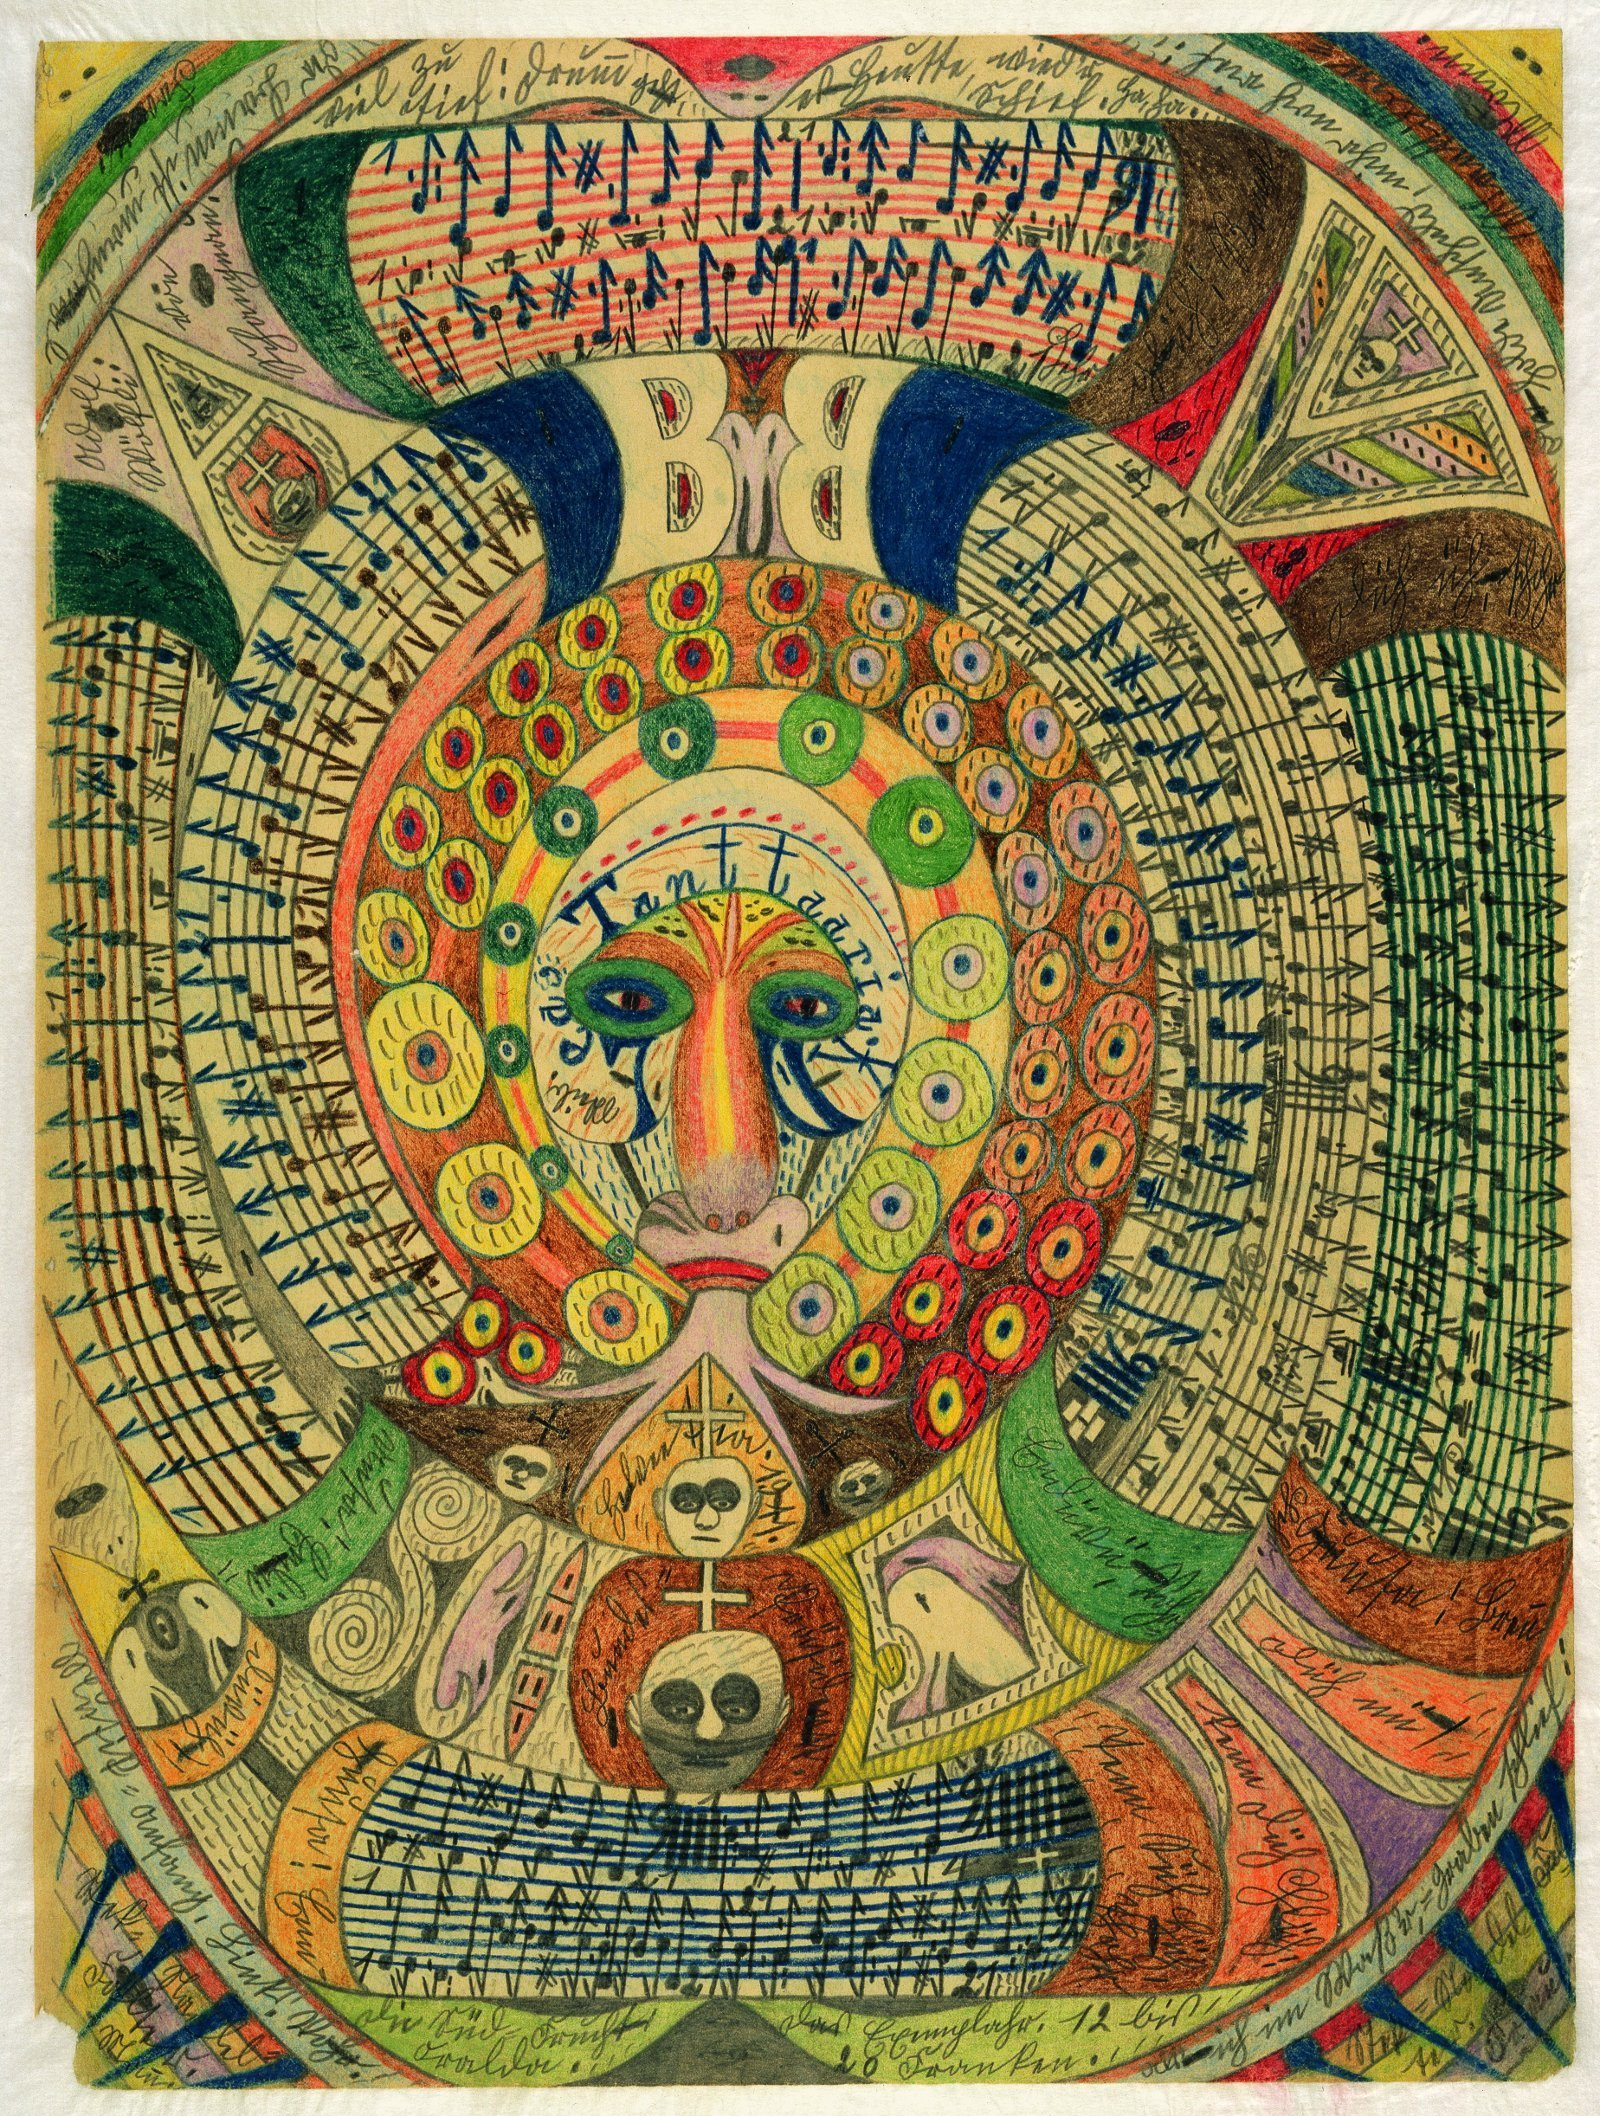 Adolf Wölfli (1864-1930): adolfi_wolfli_illustration_12_20130222_1224933249.jpeg